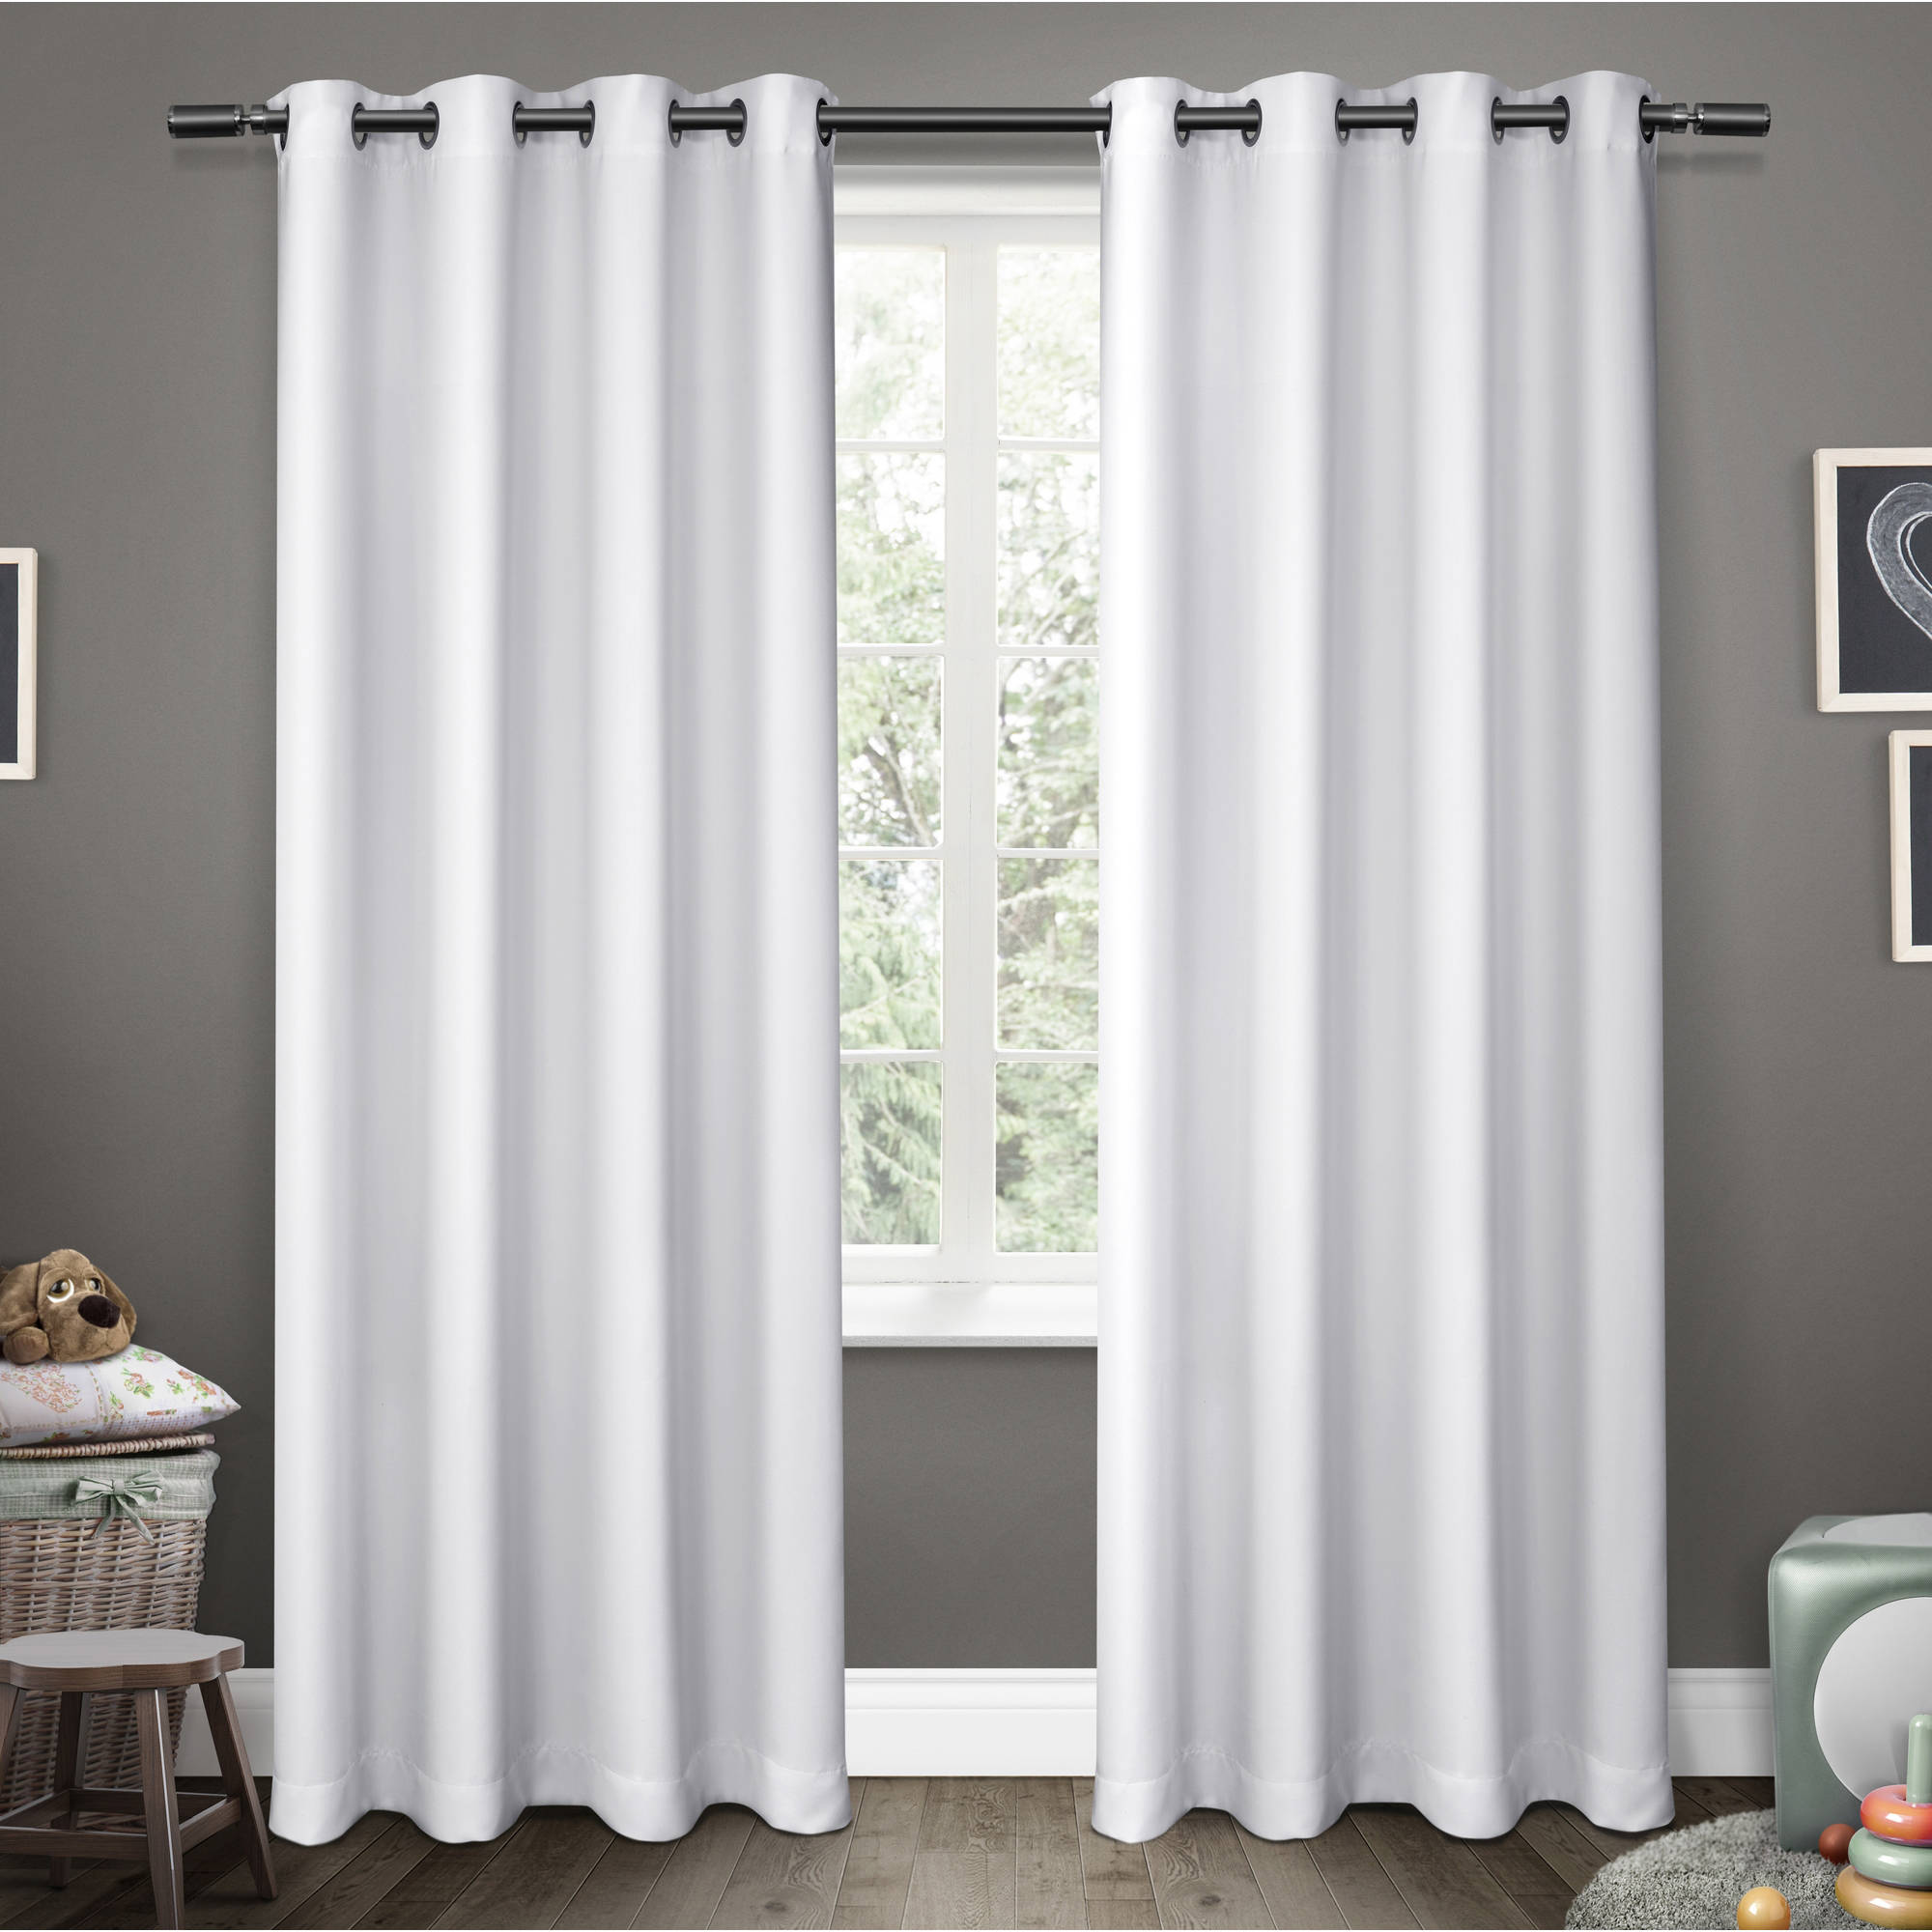 Kids Sateen Room-Darkening Grommet-Top Window Curtain Panels, Set of 2